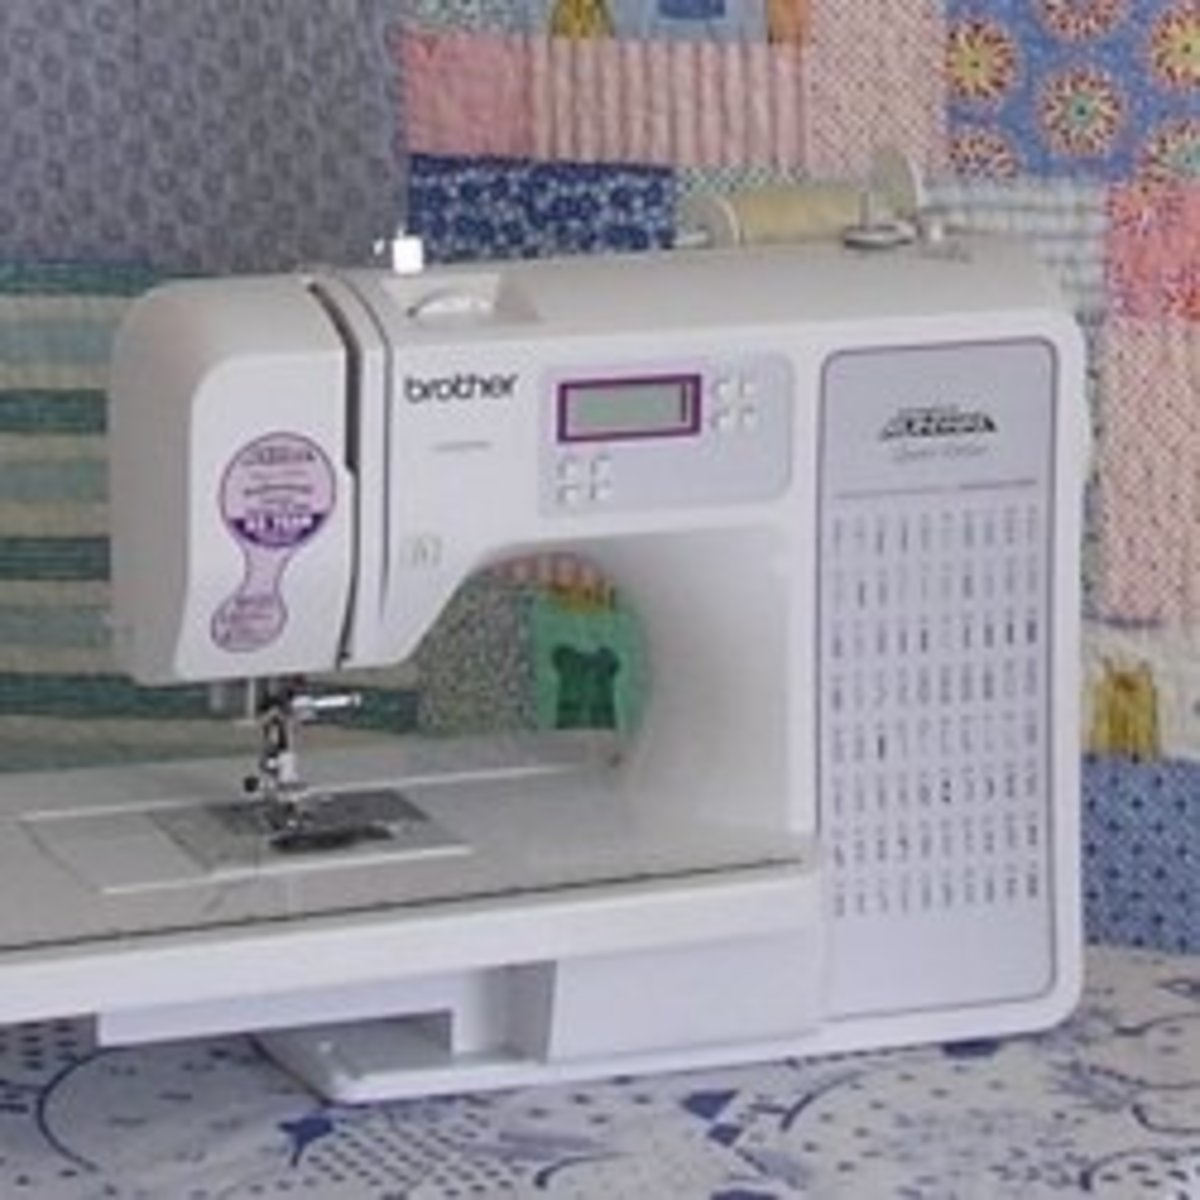 How To Use a Sewing Machine: A Guide to the Parts